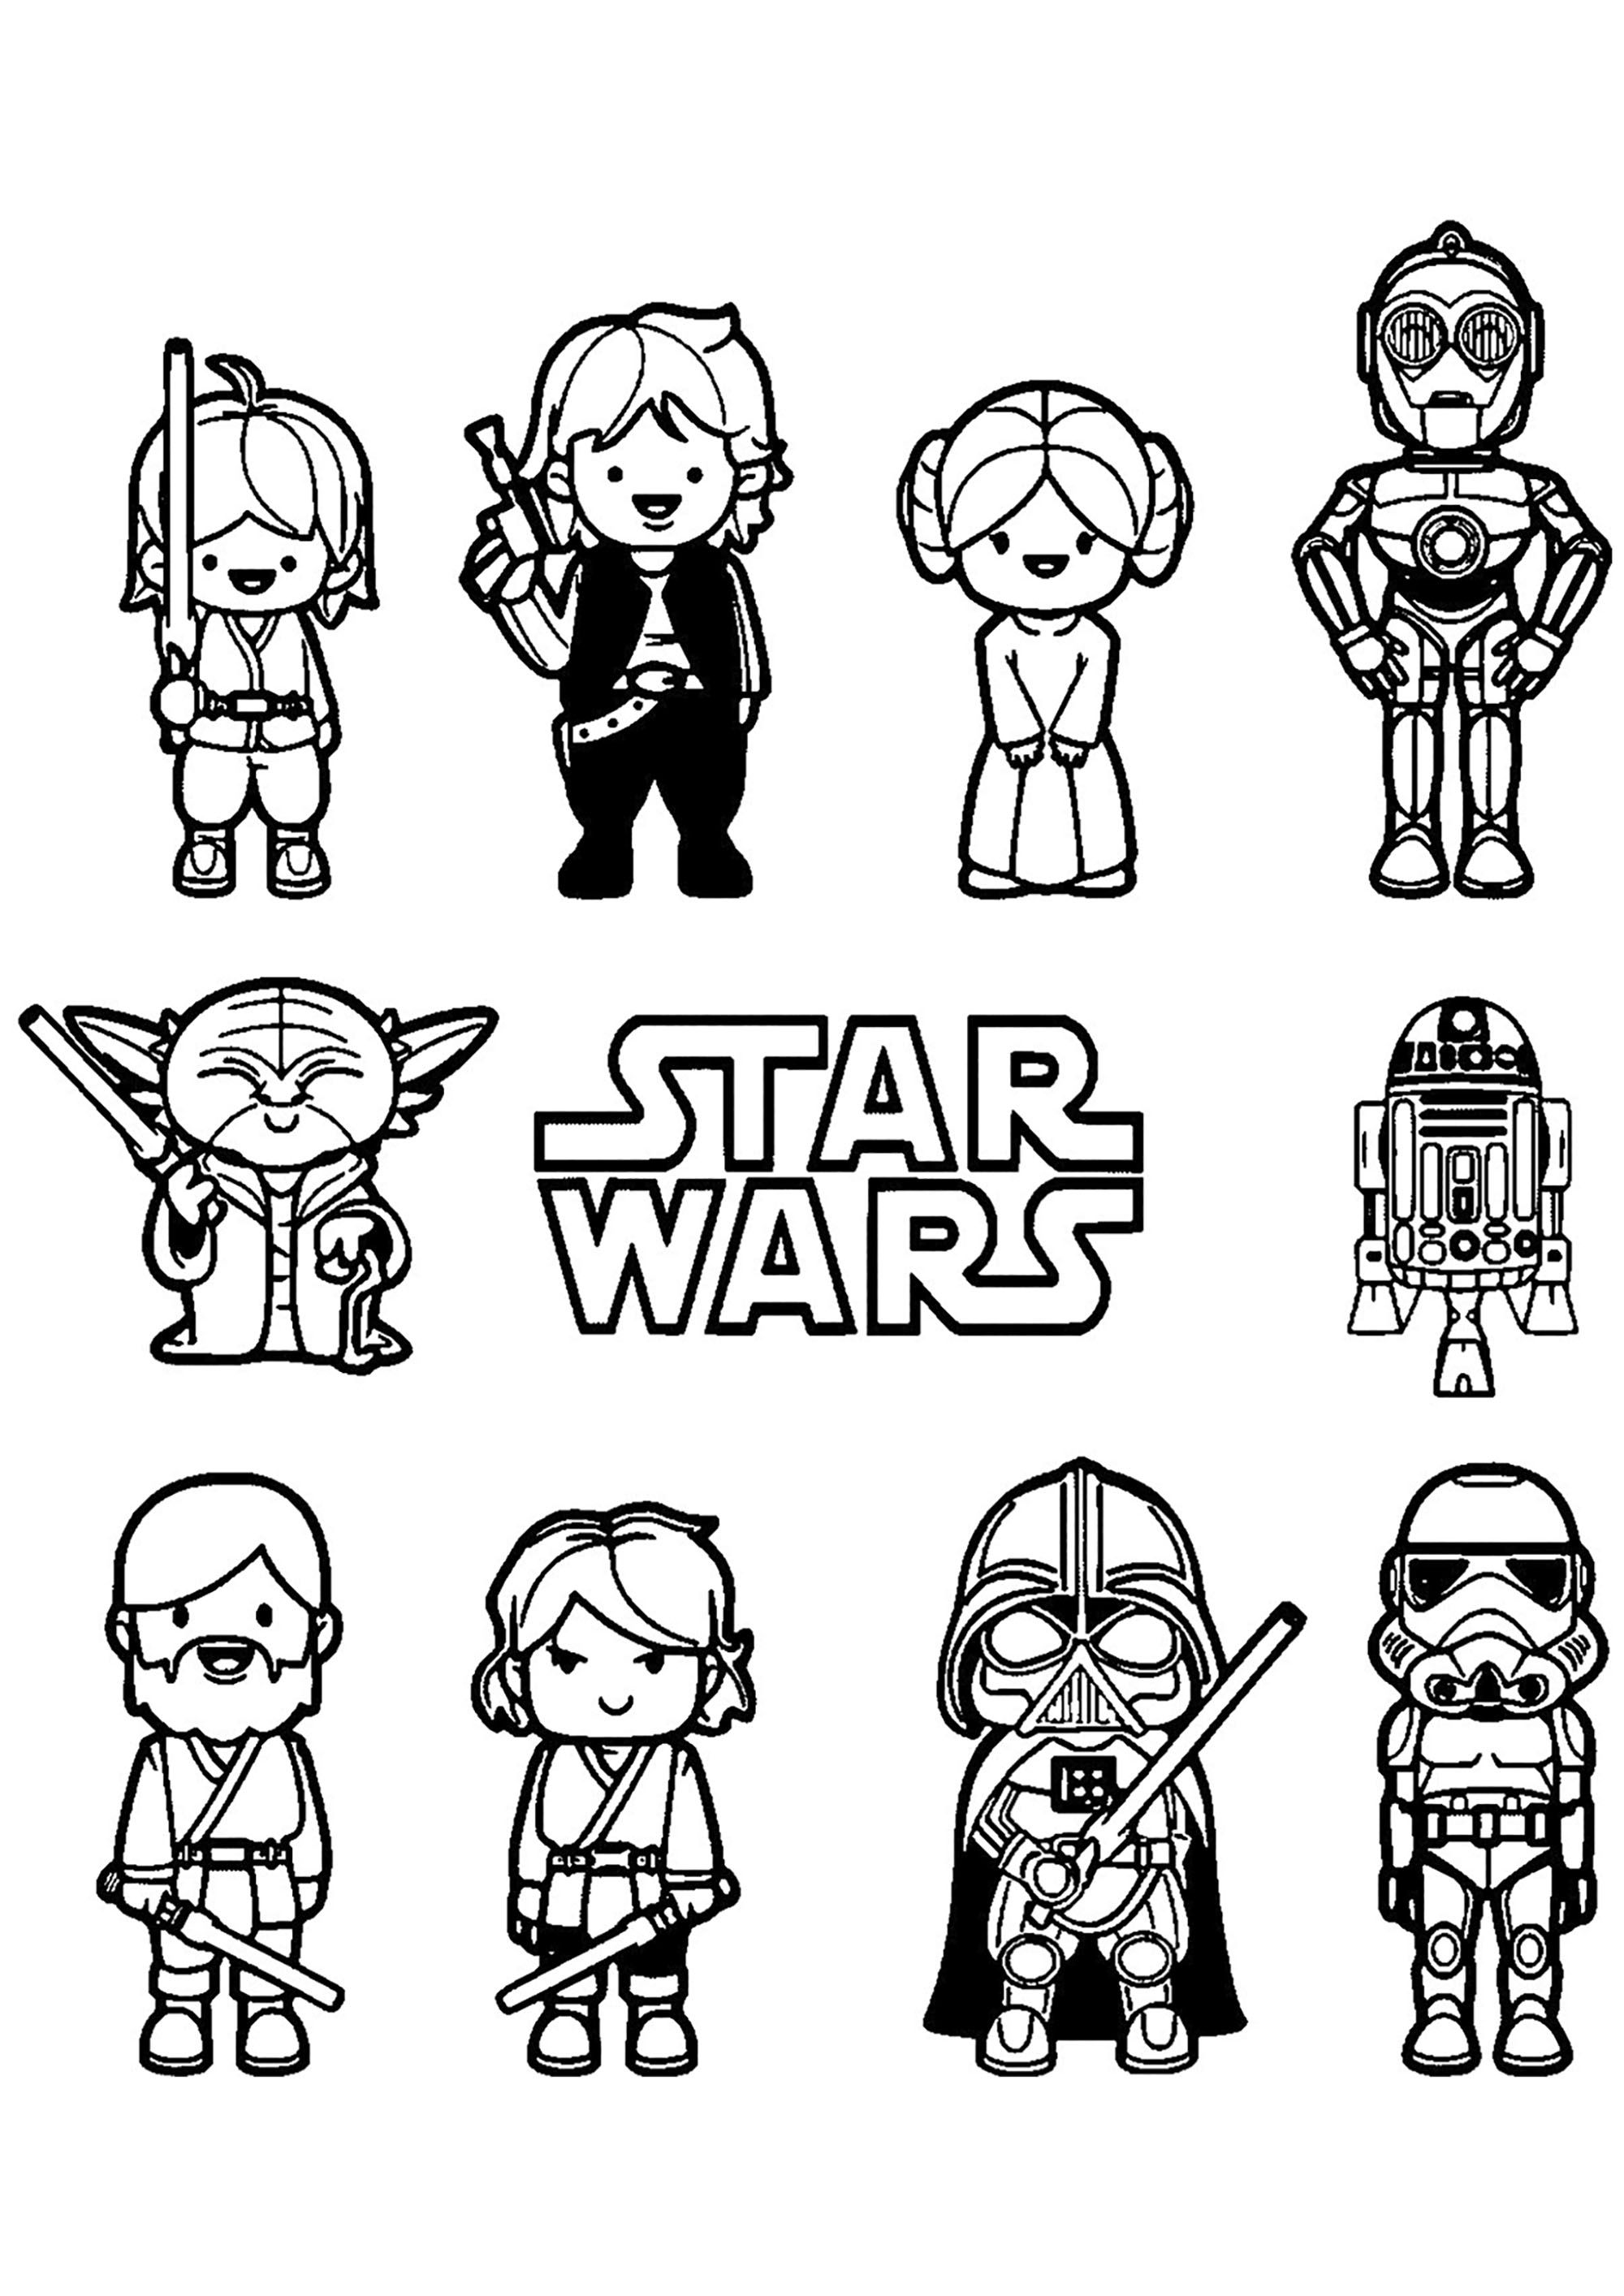 Funny Star Wars Coloring Page For Kids From The Gallery Star Wars In 2020 Star Wars Coloring Sheet Star Wars Colors Star Wars Cartoon